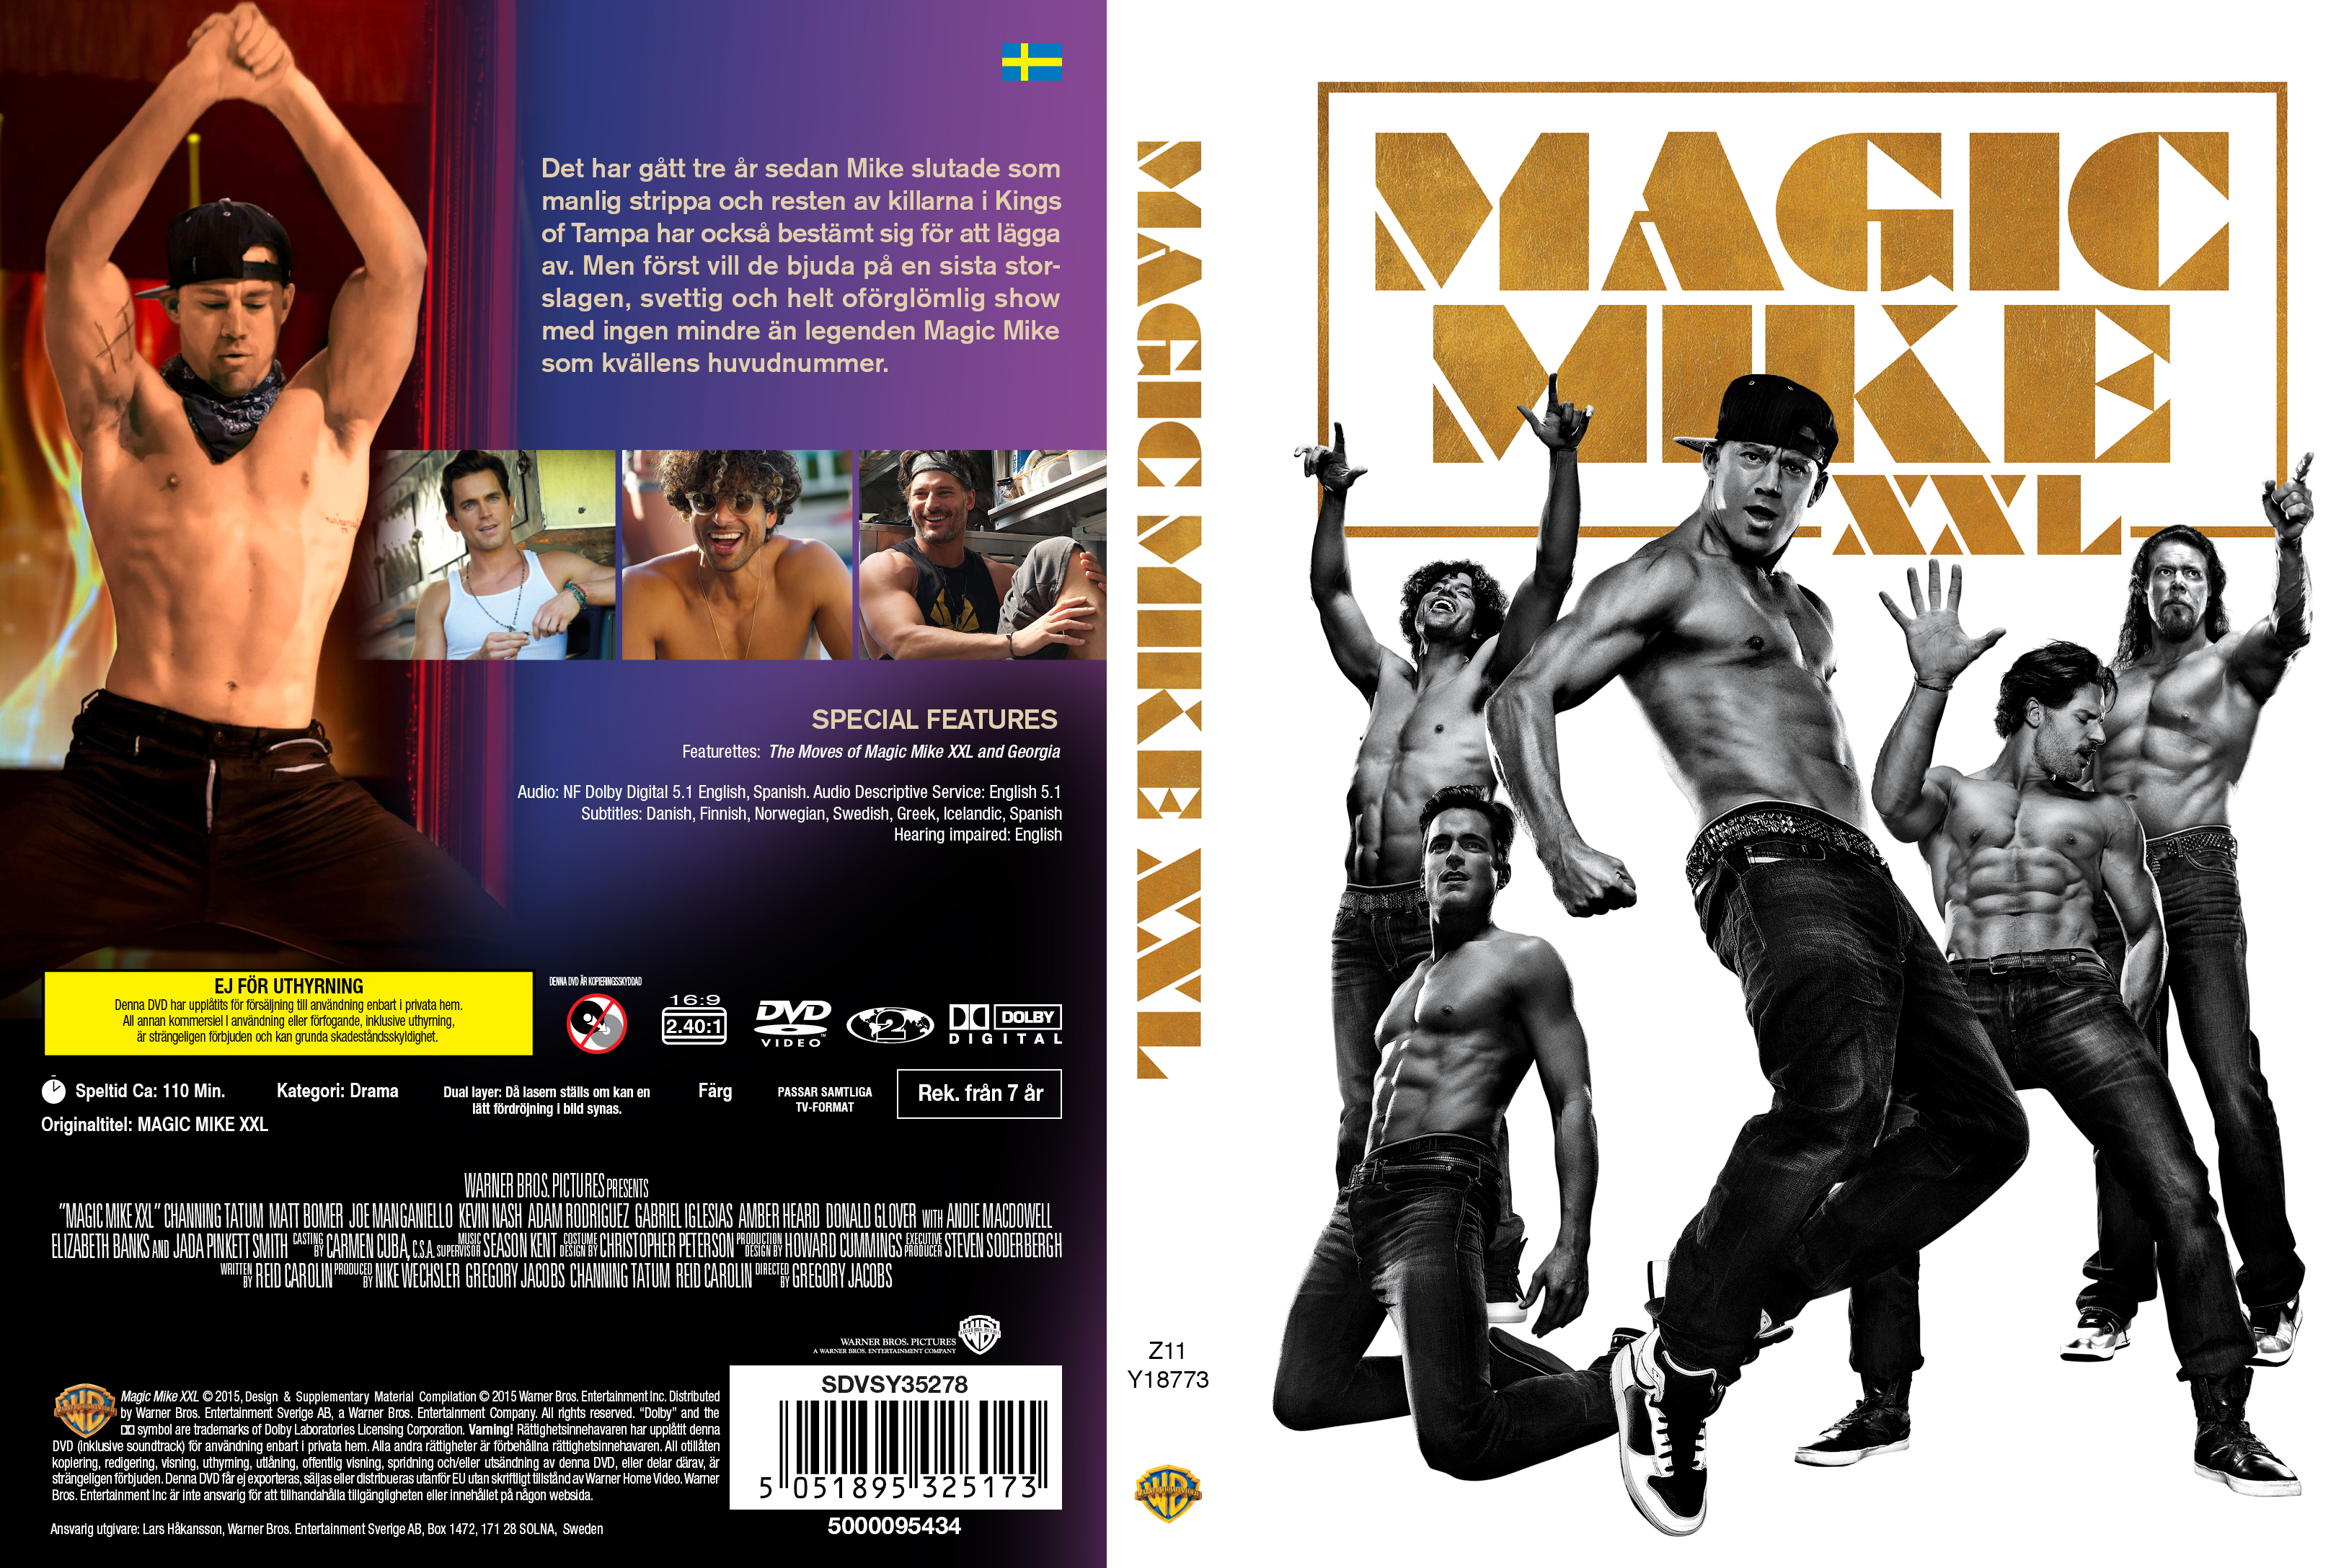 magic mike 2 come out on dvd